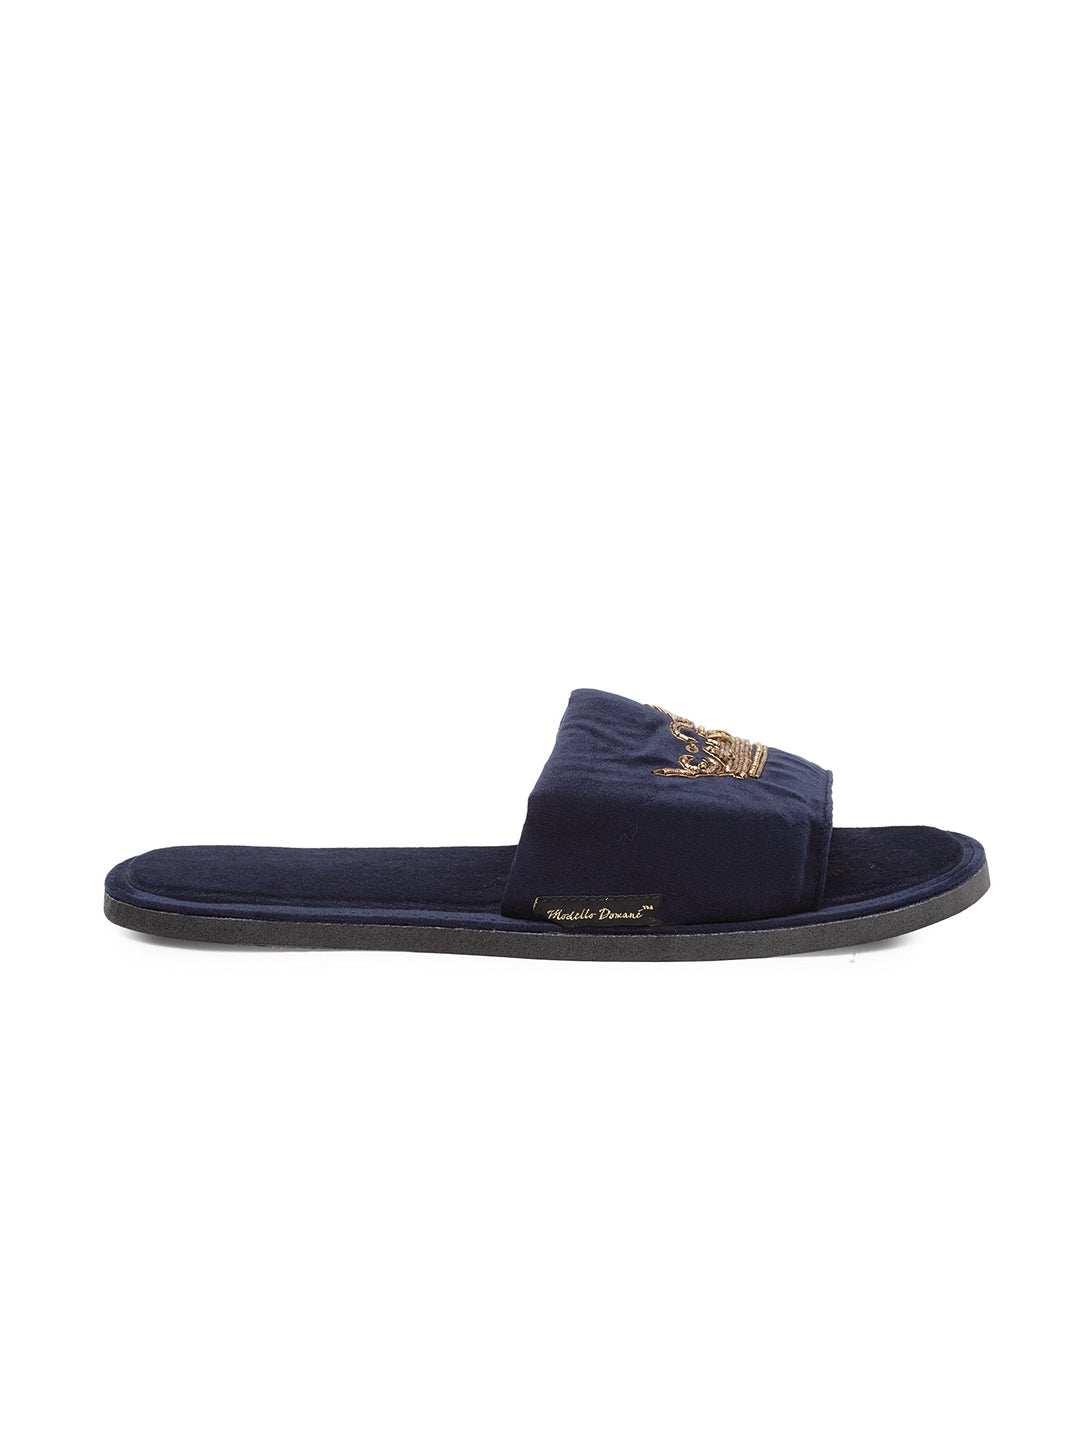 Roman Crown Domani Slippers© (Navy)